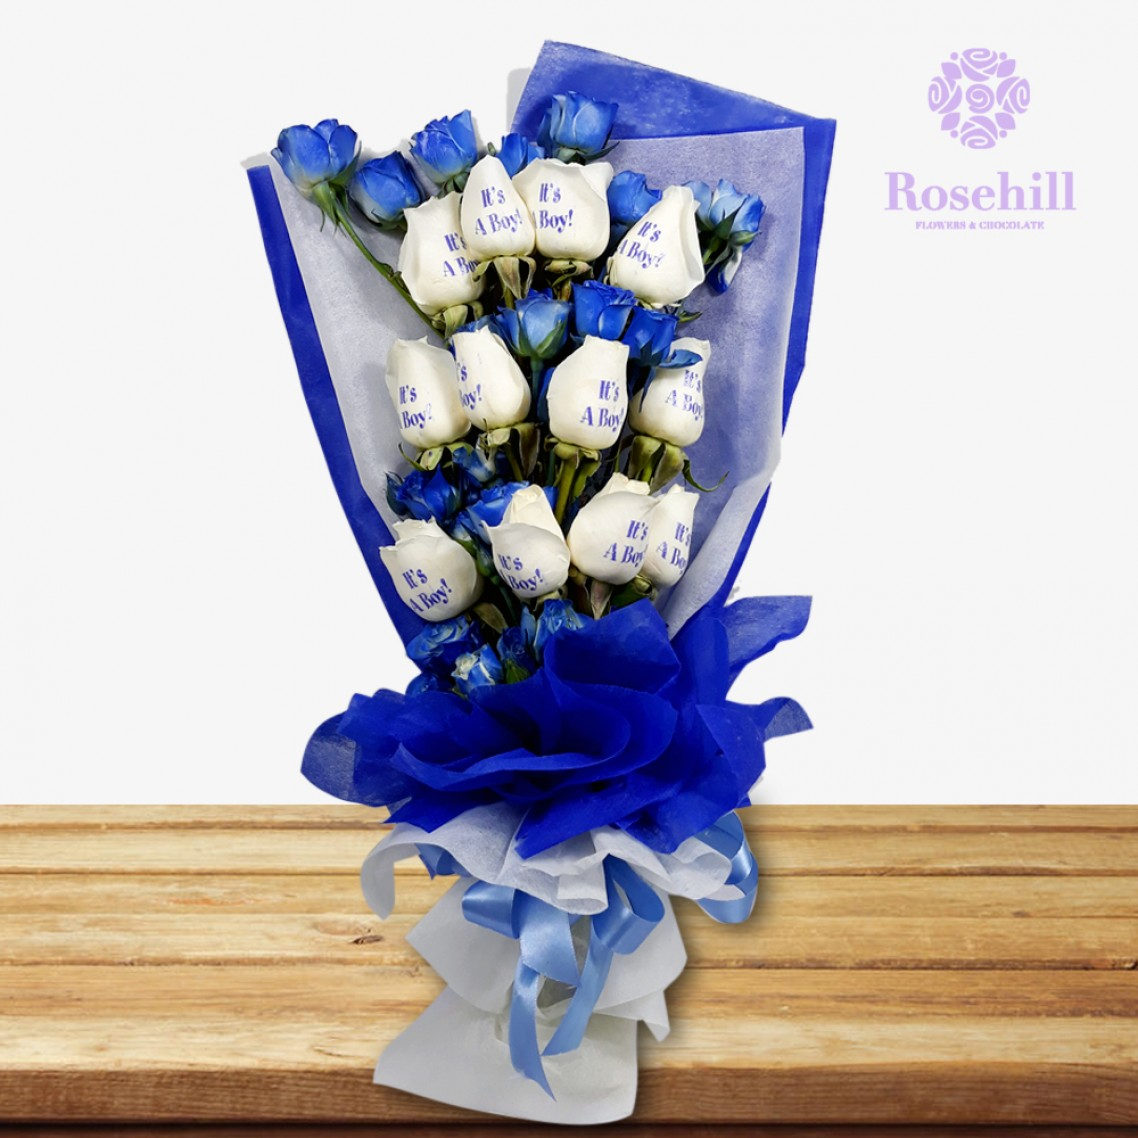 1524678766-h-250-_Rosehill's It's A Boy Bouquet with Spray Roses.jpg